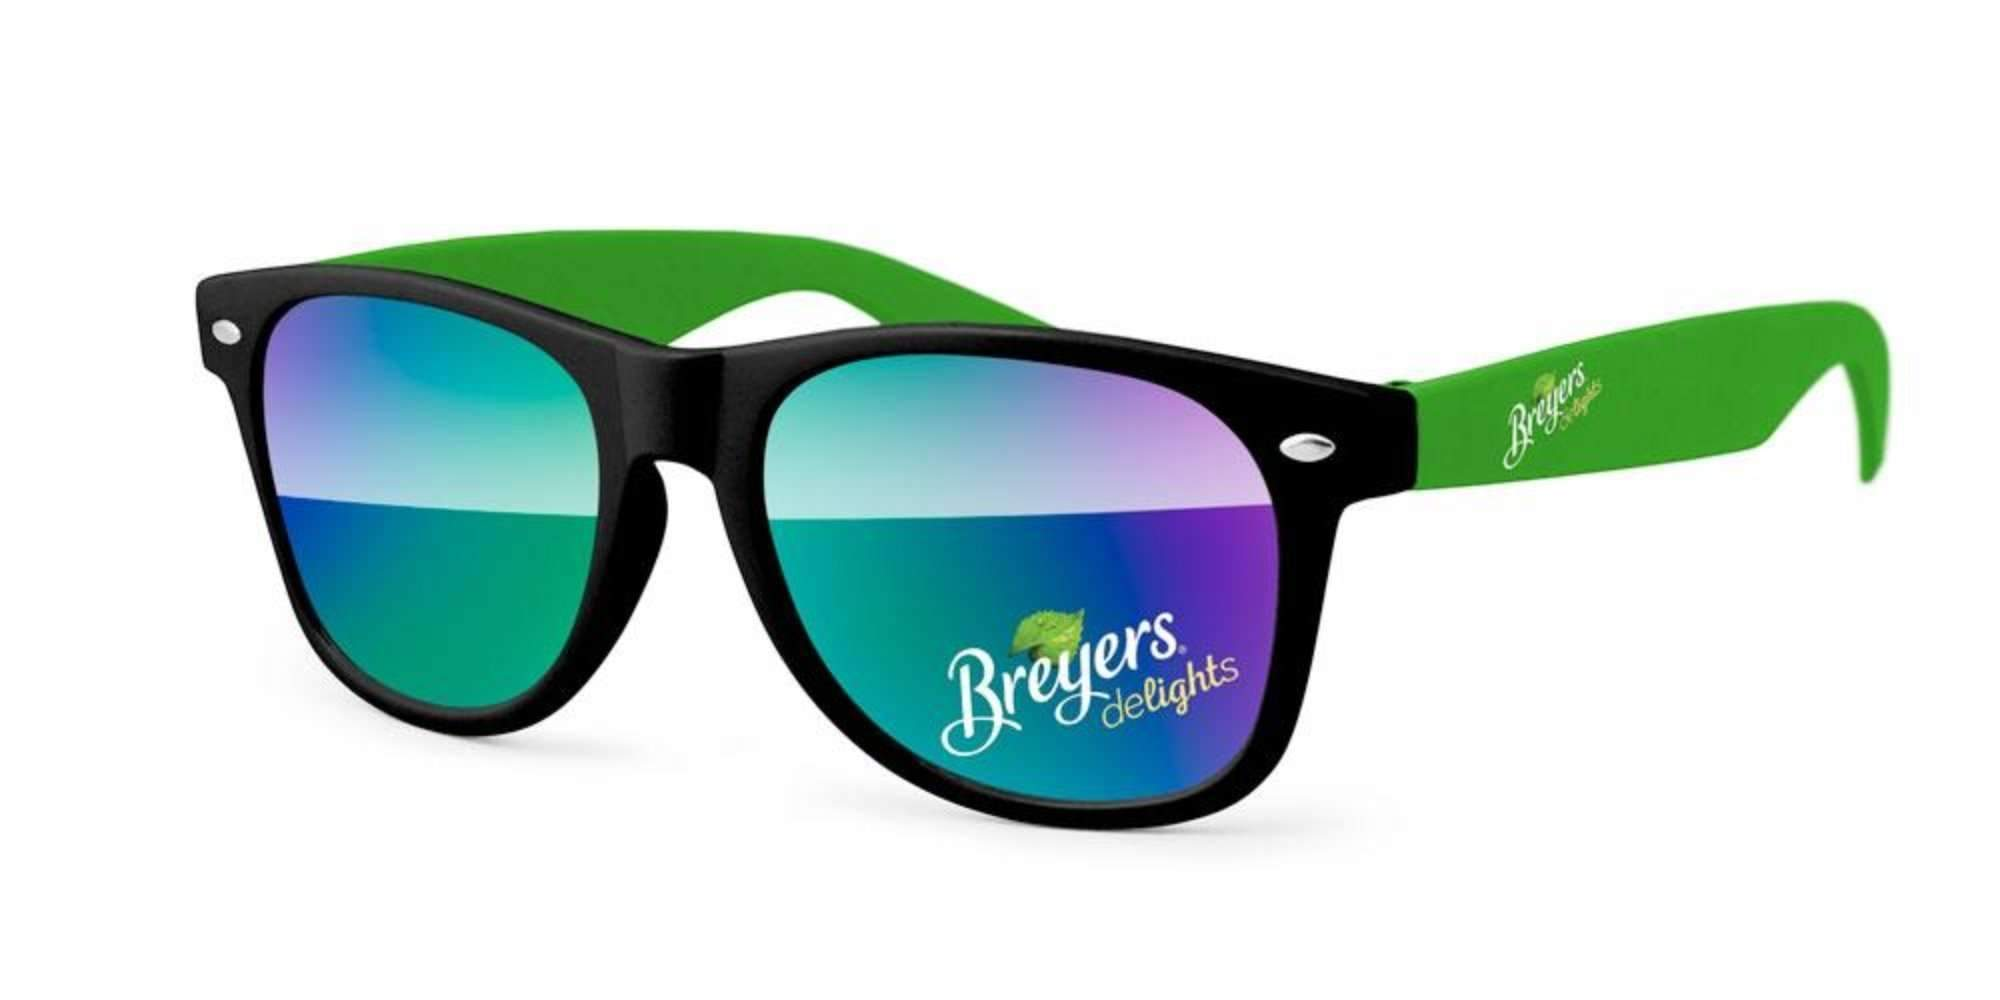 2-tone Retro Mirror Promotional Sunglasses w/ full-color lens & temple imprints